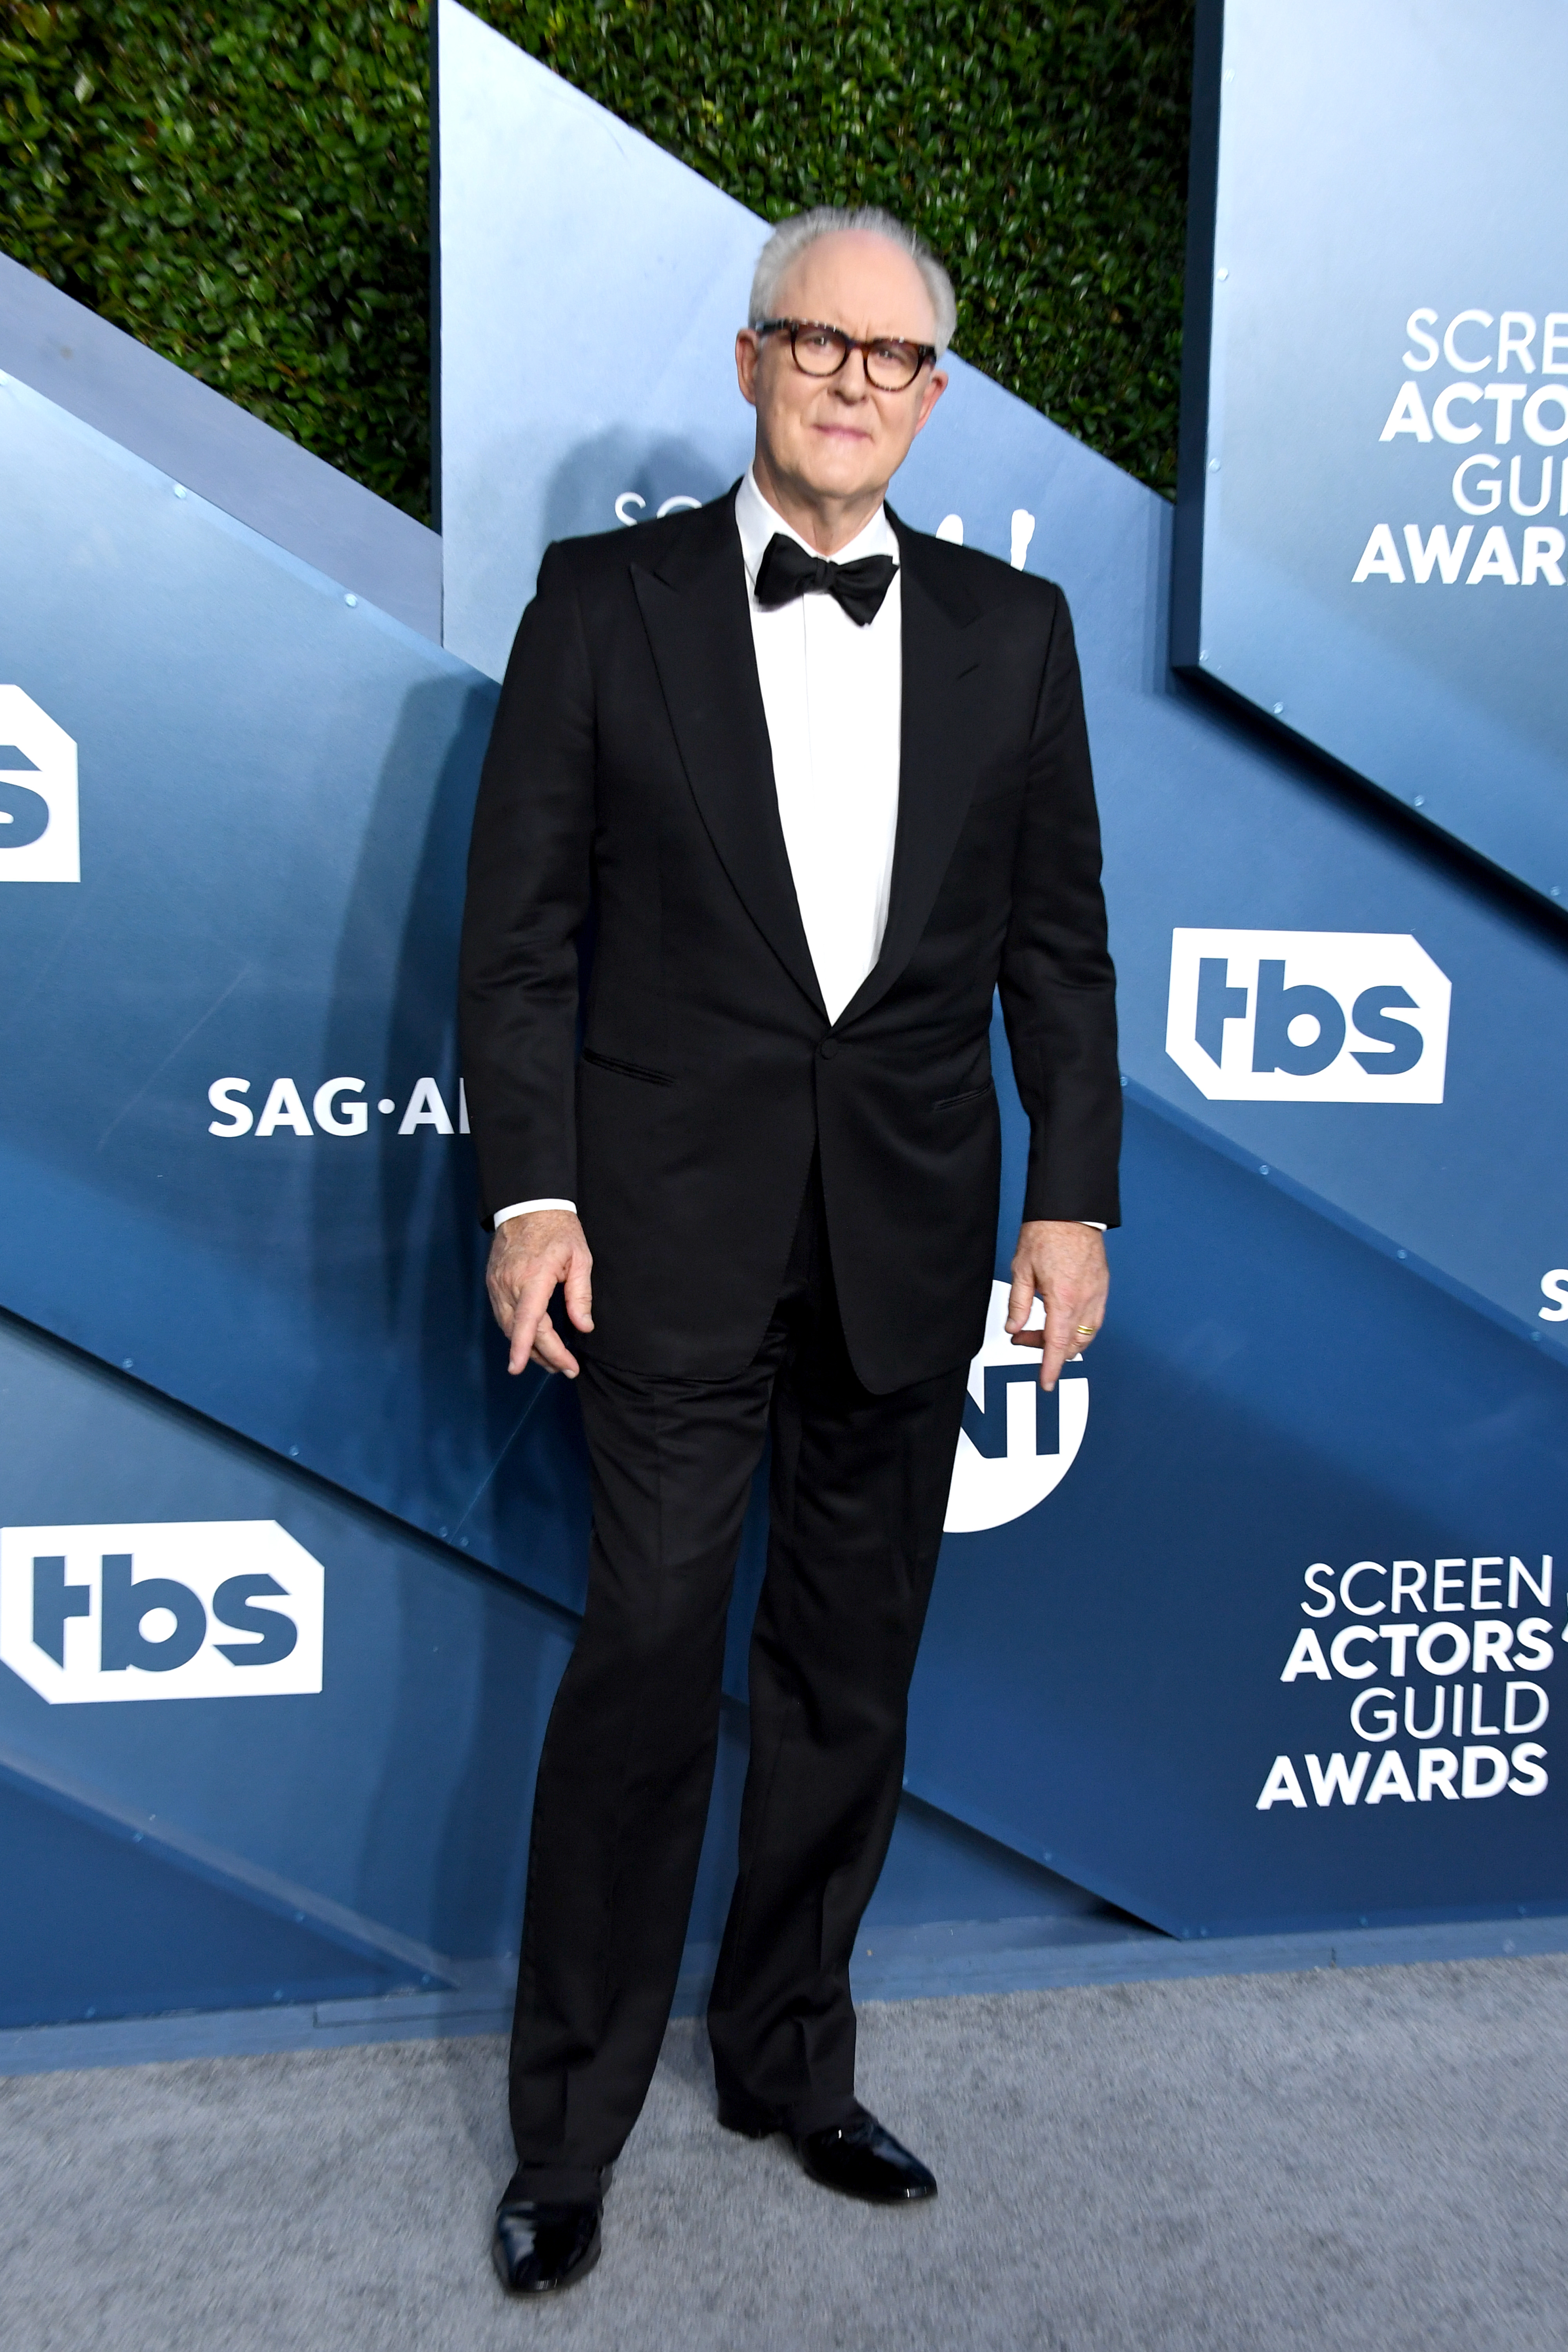 LOS ANGELES, CALIFORNIA - JANUARY 19: John Lithgow attends the 26th Annual Screen ActorsGuild Awards at The Shrine Auditorium on January 19, 2020 in Los Angeles, California. (Photo by Jon Kopaloff/Getty Images)